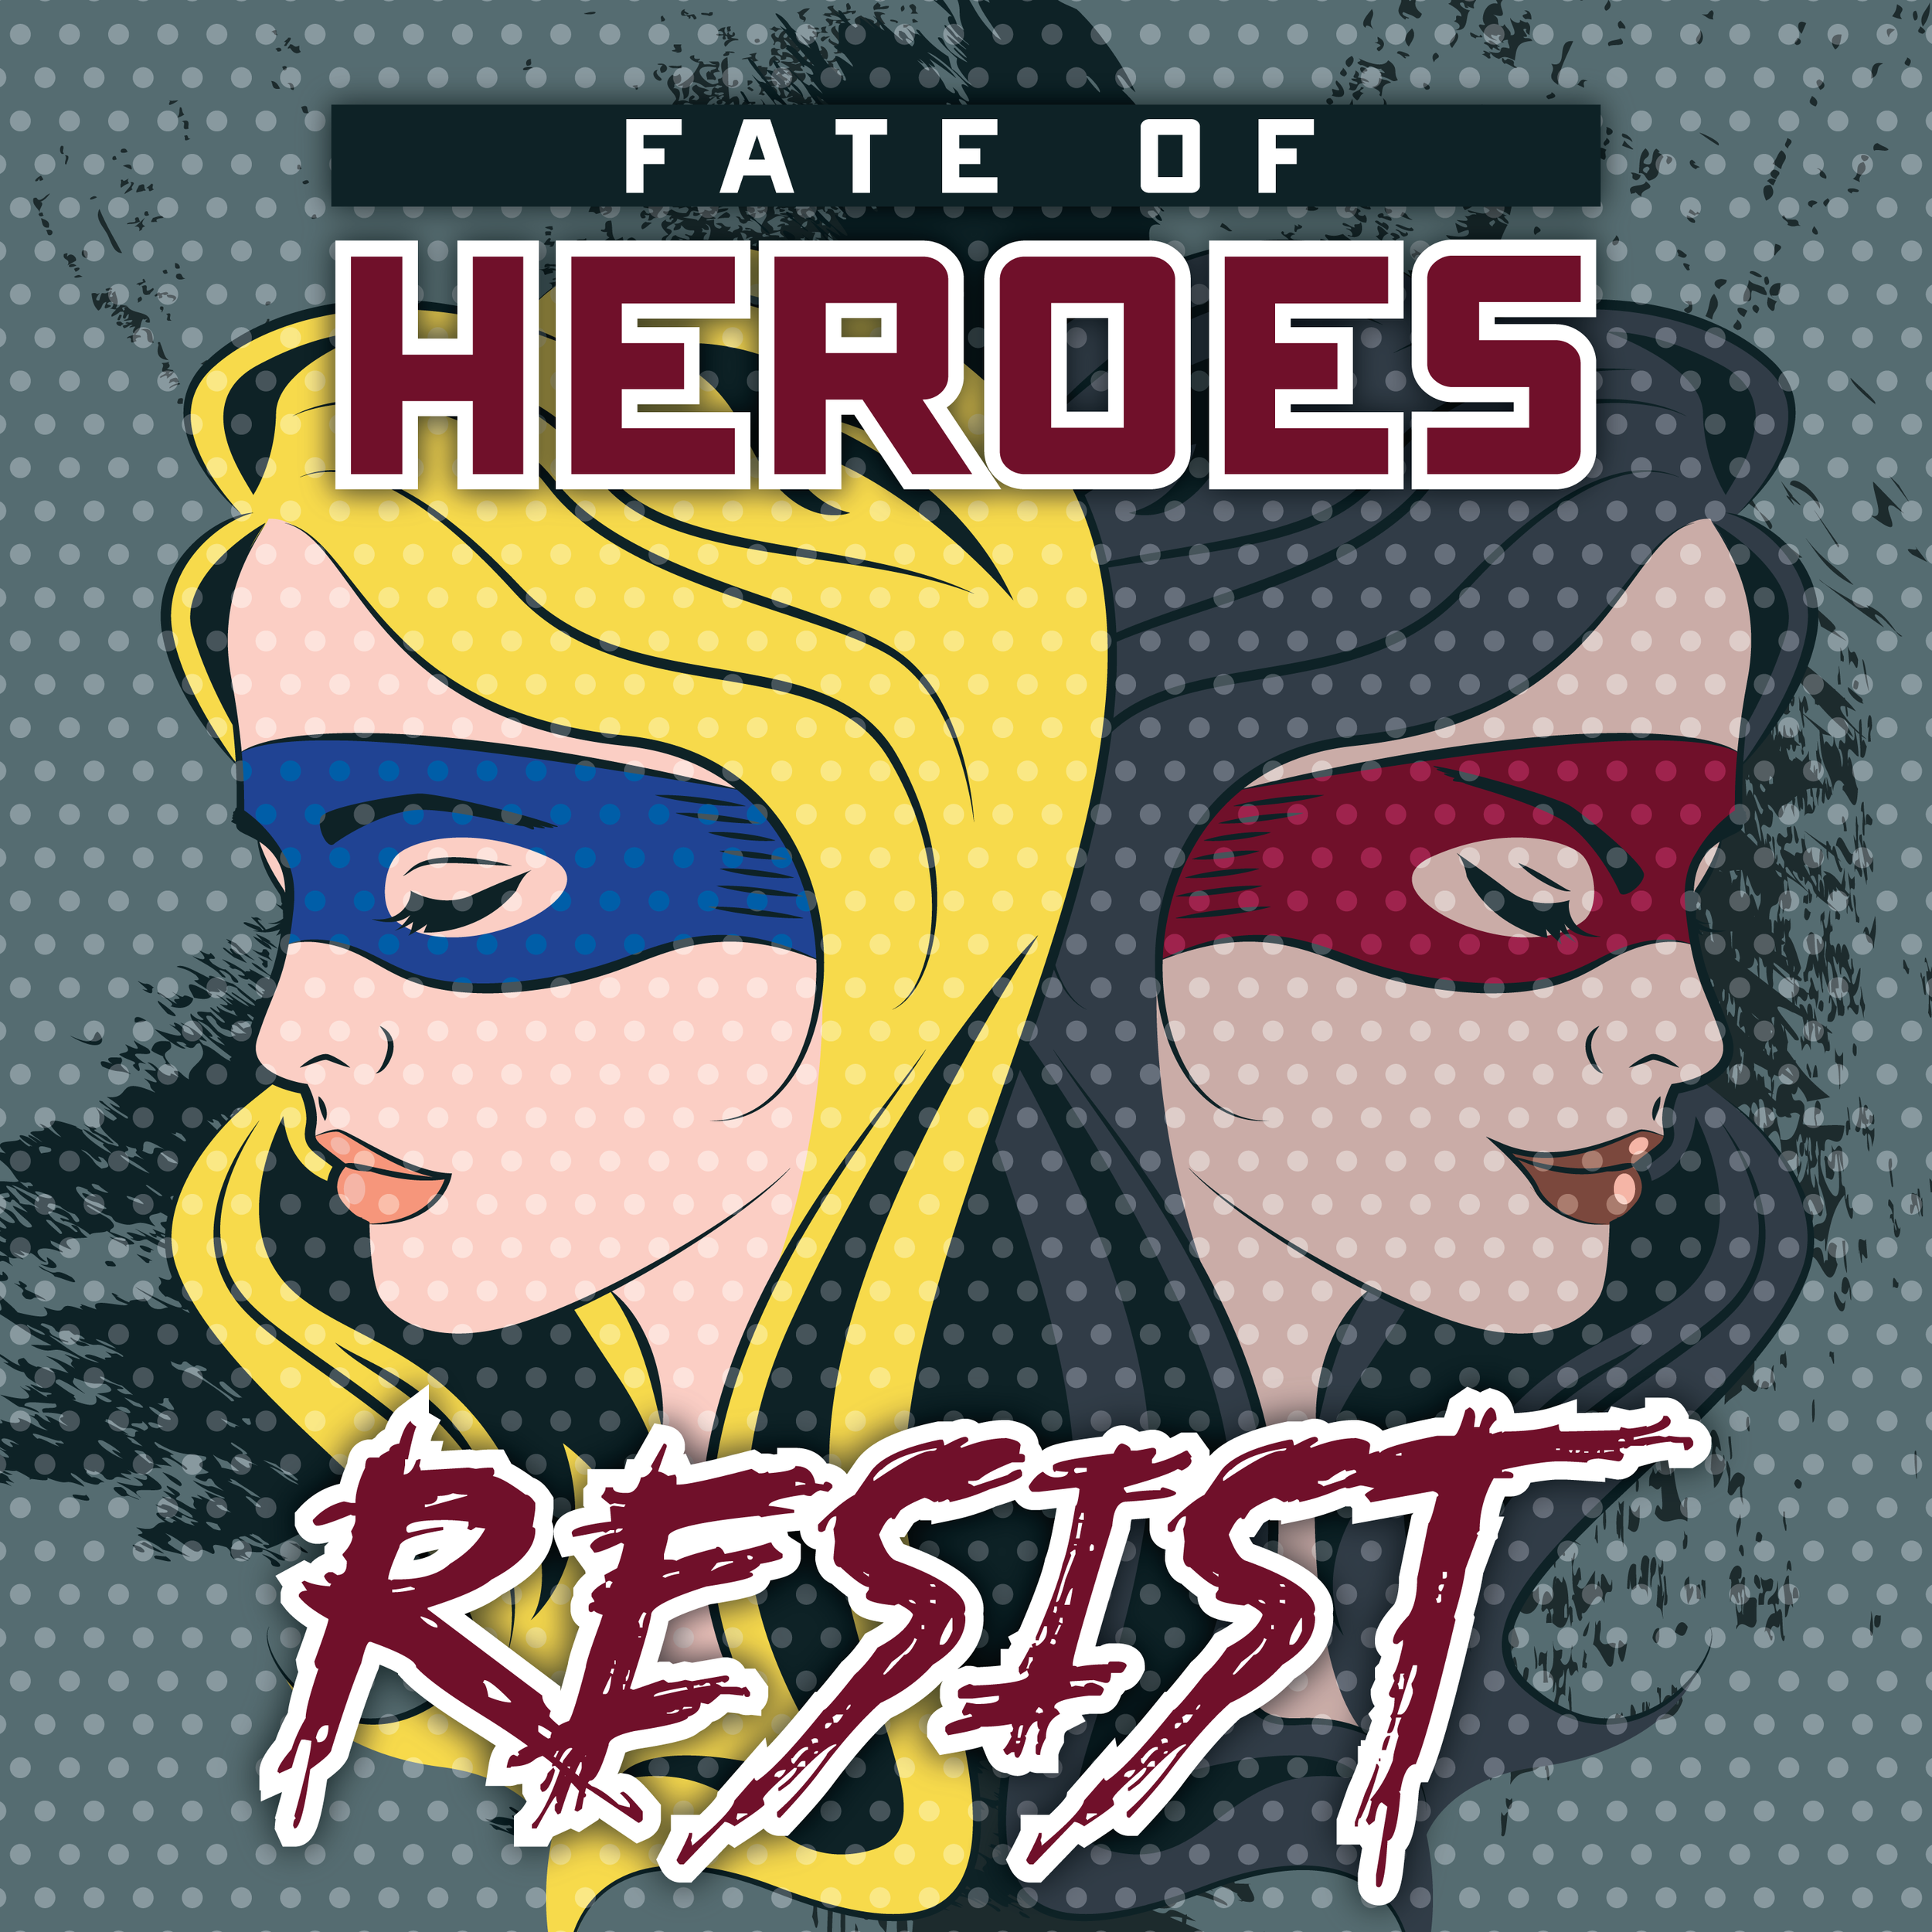 Fate of Heroes - A FATE Accelerated system adventure featuring a motley crew of misfits, brought together by a testy old man to use their abilities to aid in the protection of their city and the world.